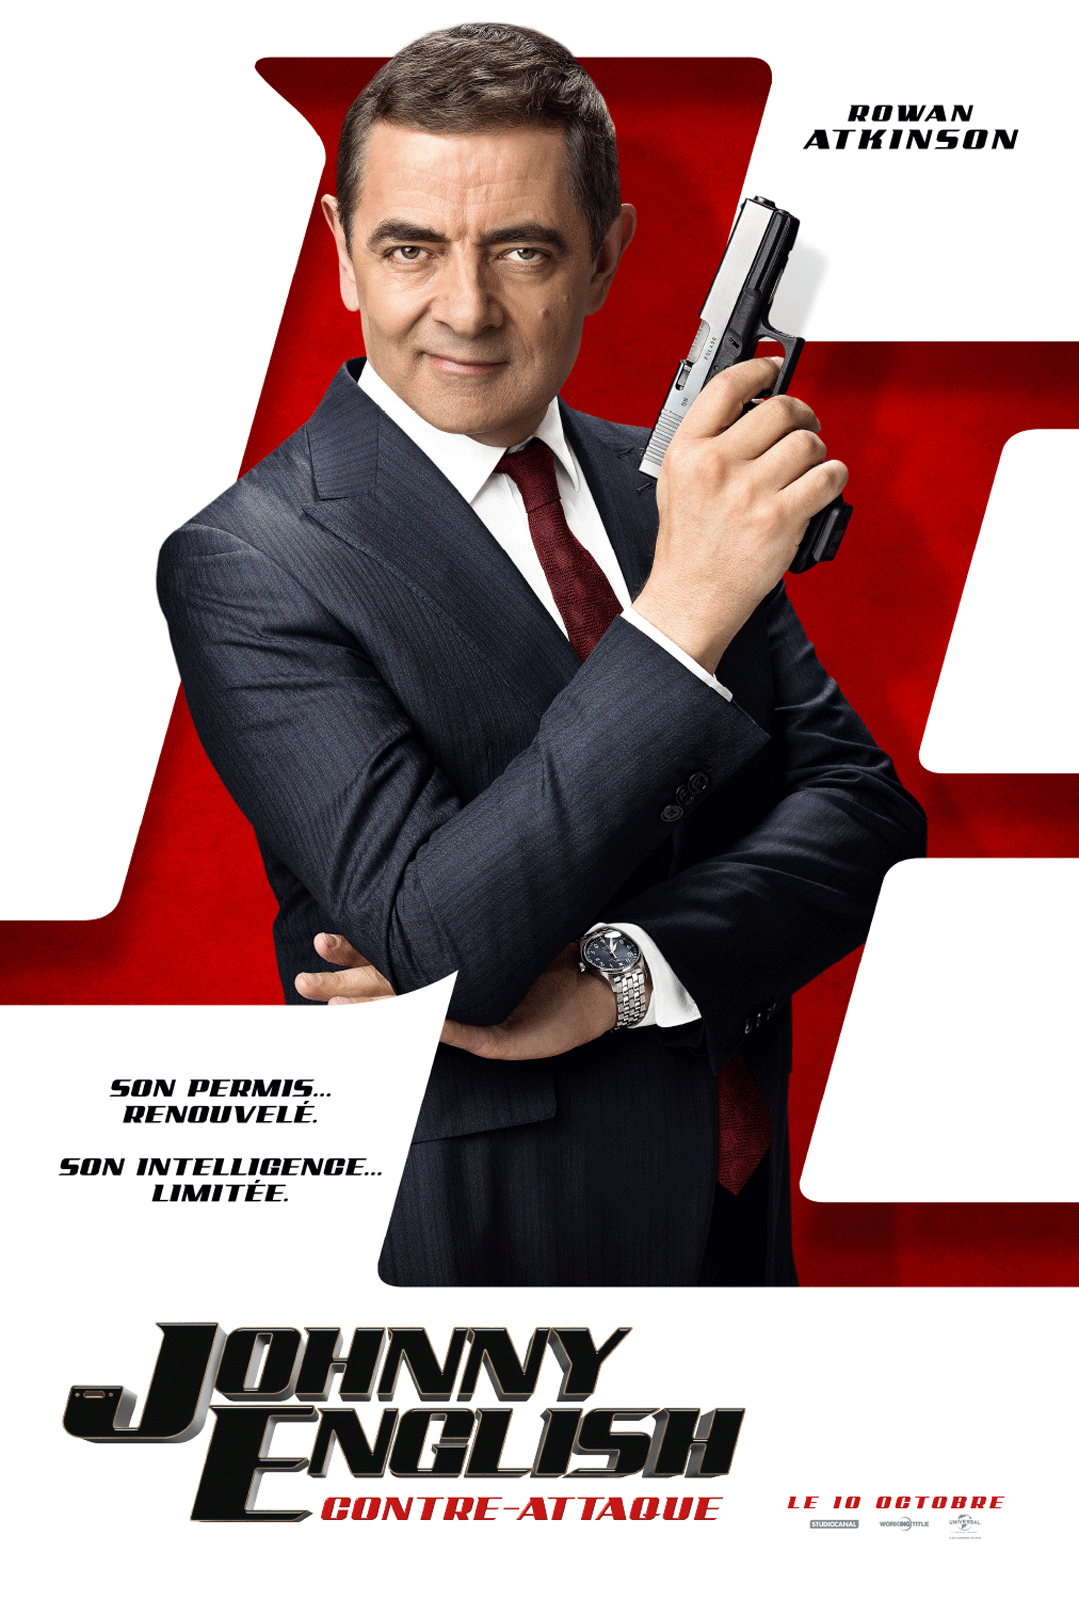 Johnny English contre-attaque - Film (2018)